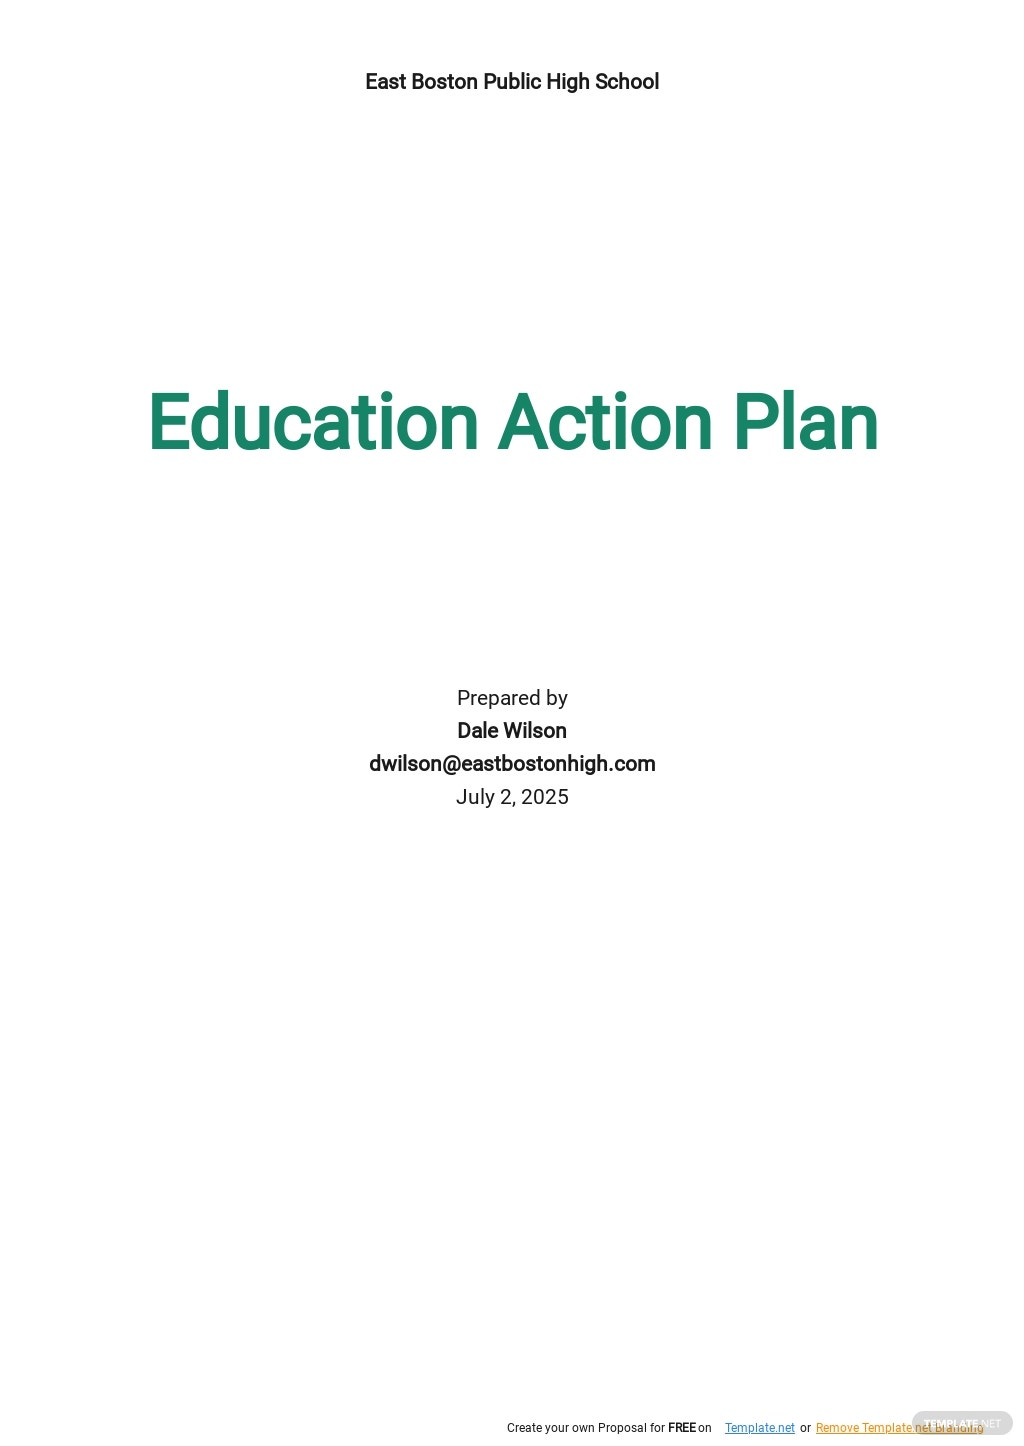 Education Action Plan Template.jpe